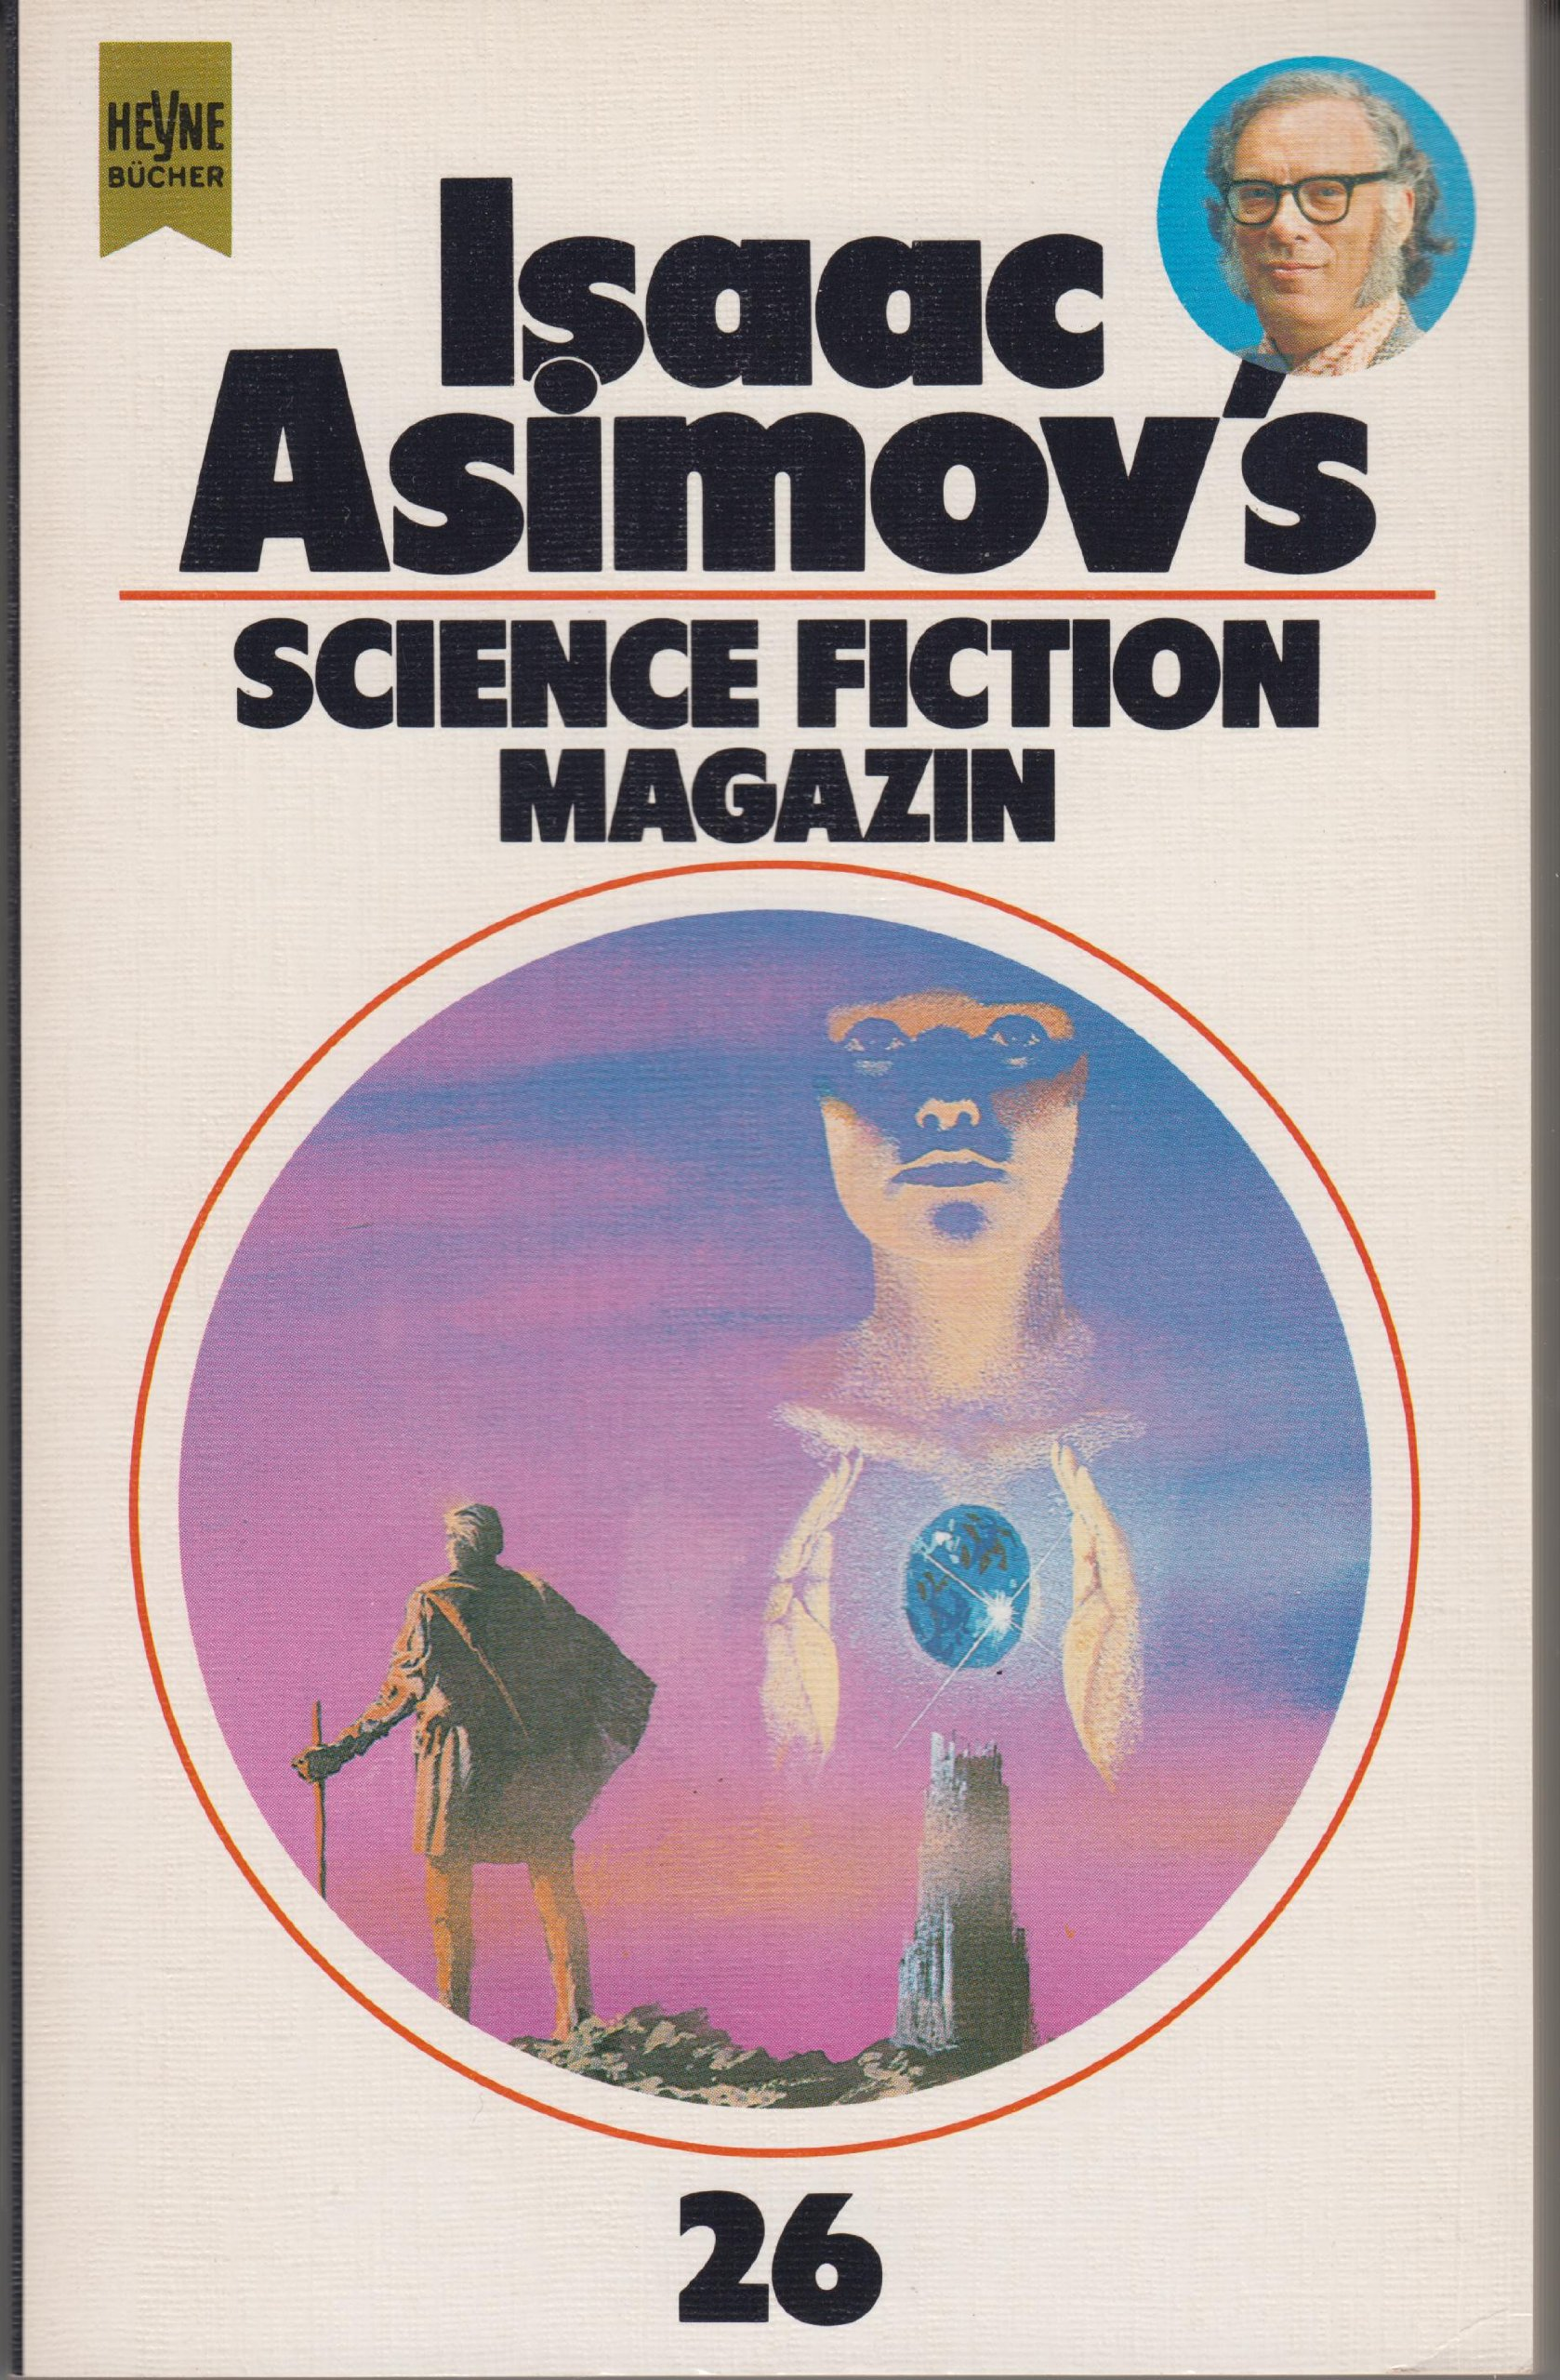 Friedel Wahren (Hrsg.) - Isaac Asimov's Science Fiction Magazin 26. Folge